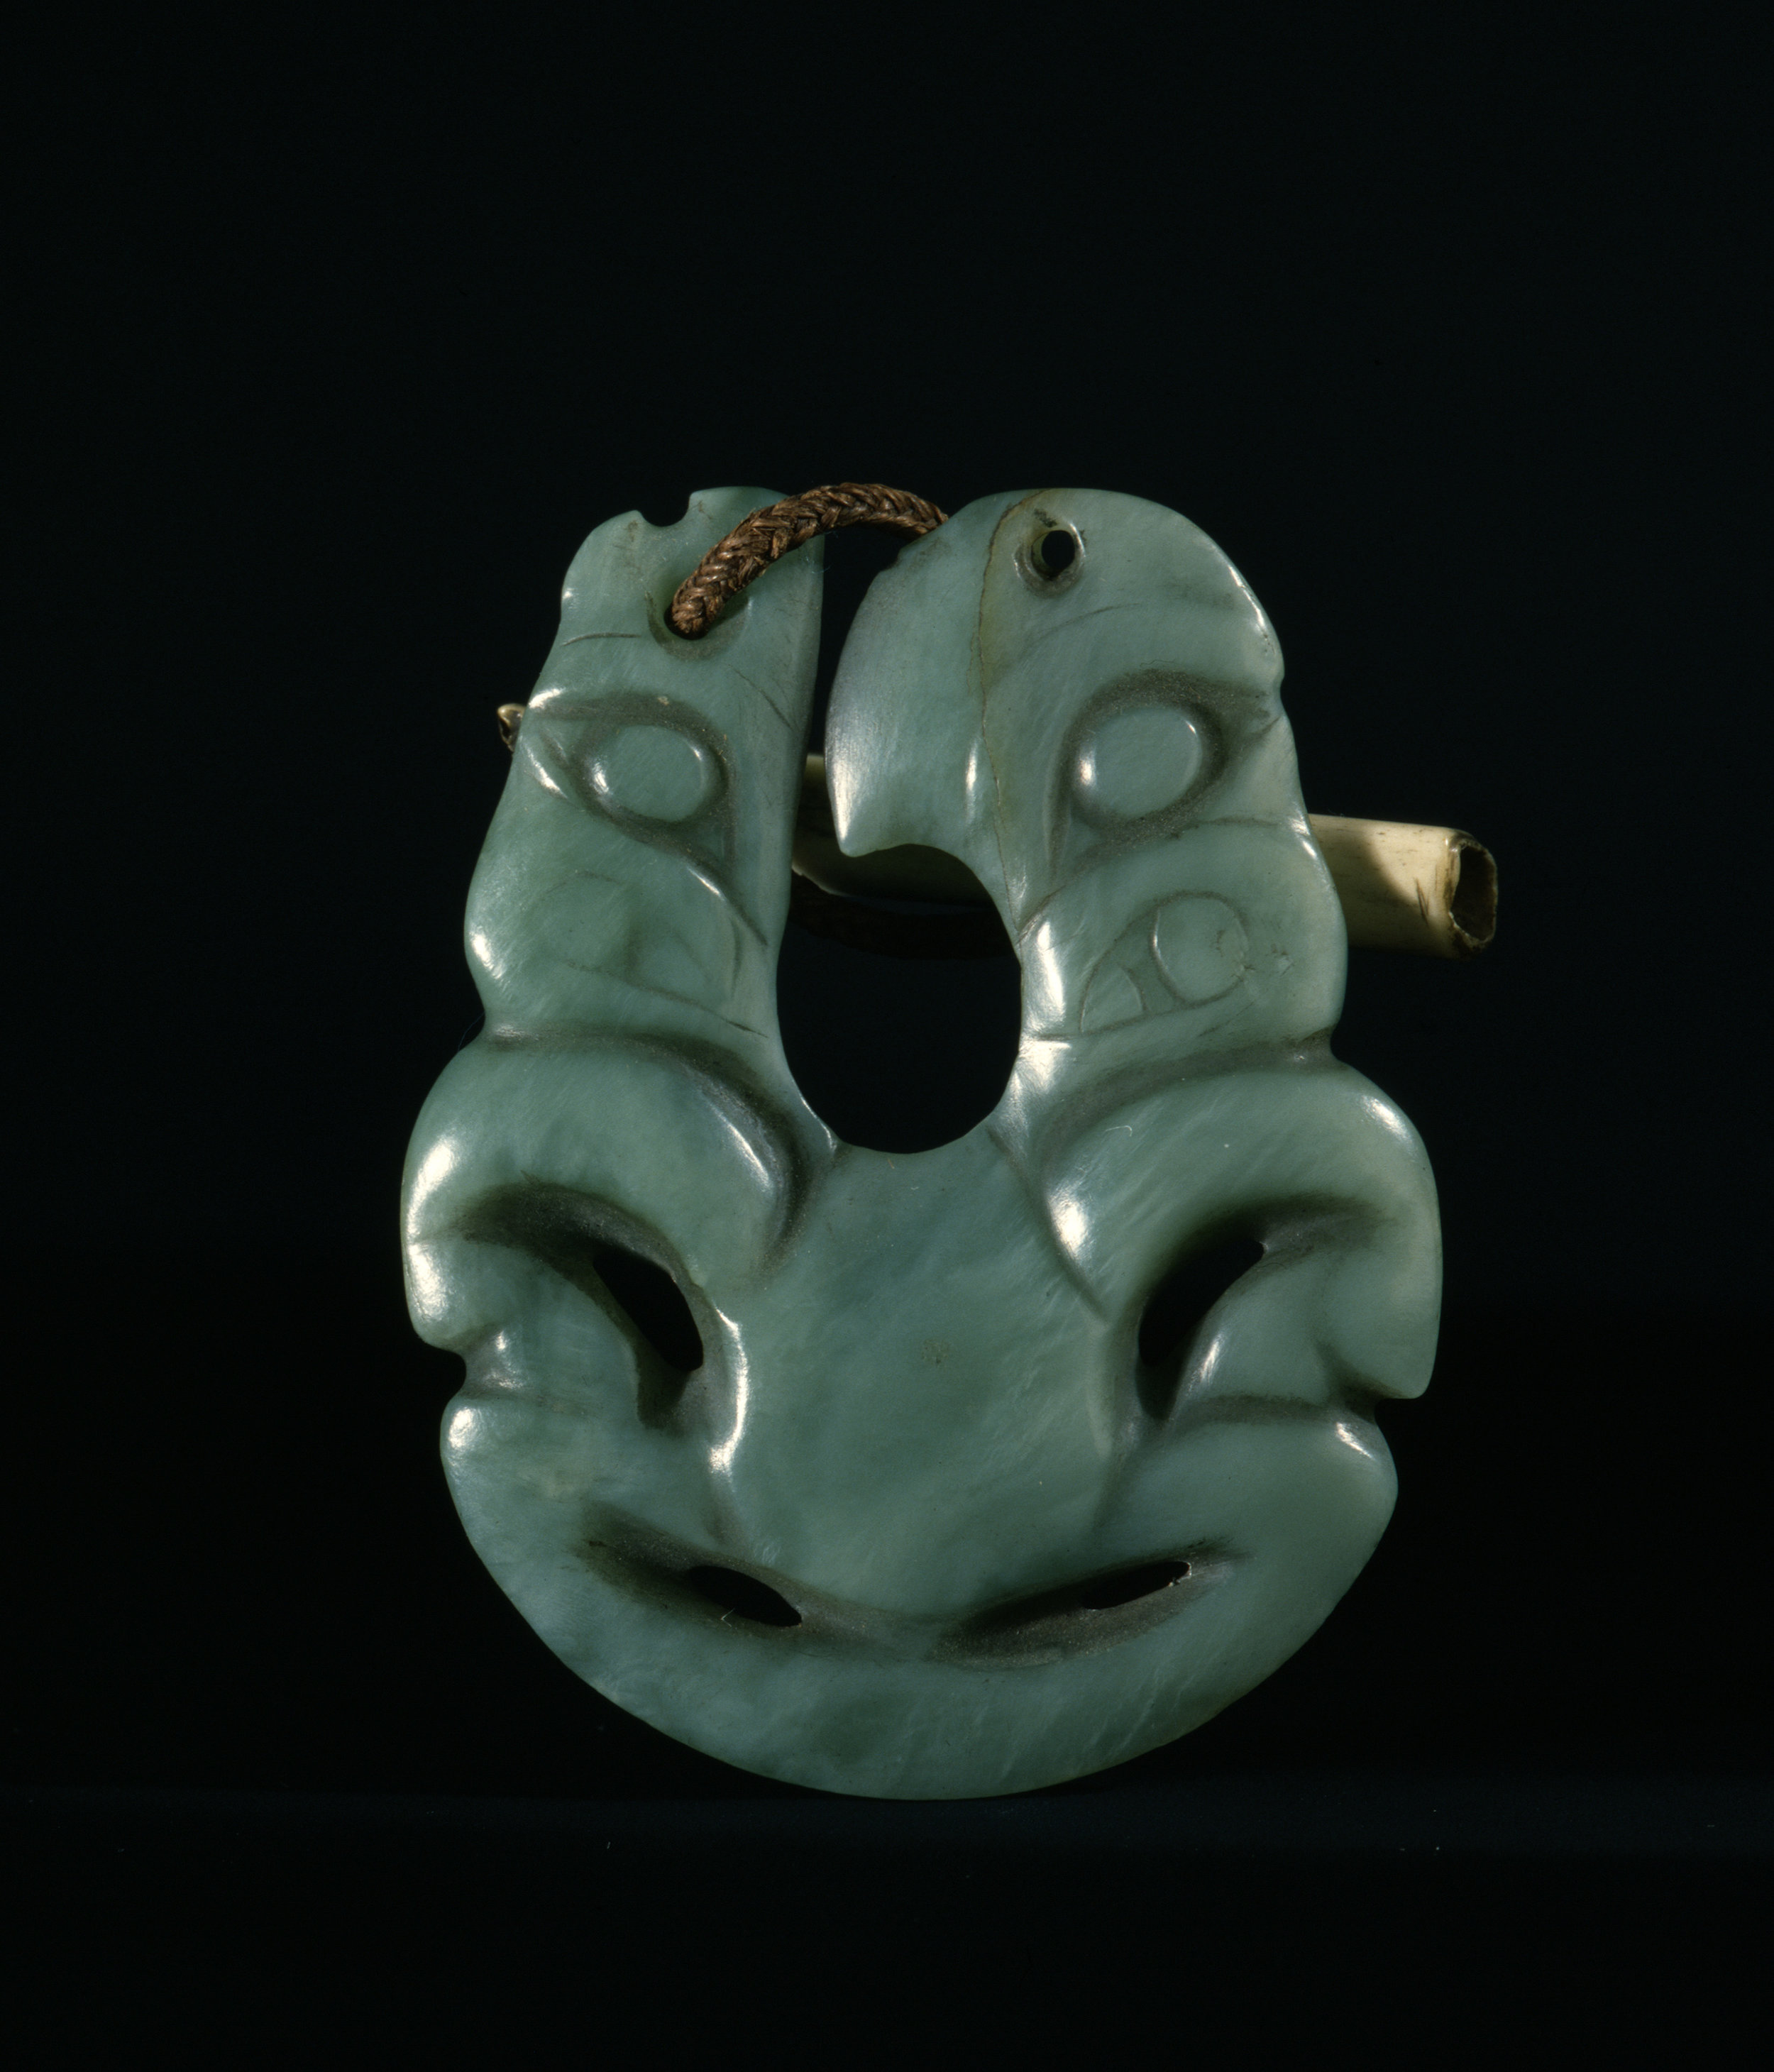 Hei matau (fish hook) pendant made of nephrite jade that was given by a Ngapuhi Maori chief to a British captain in 1834. It combines the shape of a fish hook with that of a tiki figure. | 19th century | Inv. #: 55406968 © Werner Forman Archive / British Museum, London